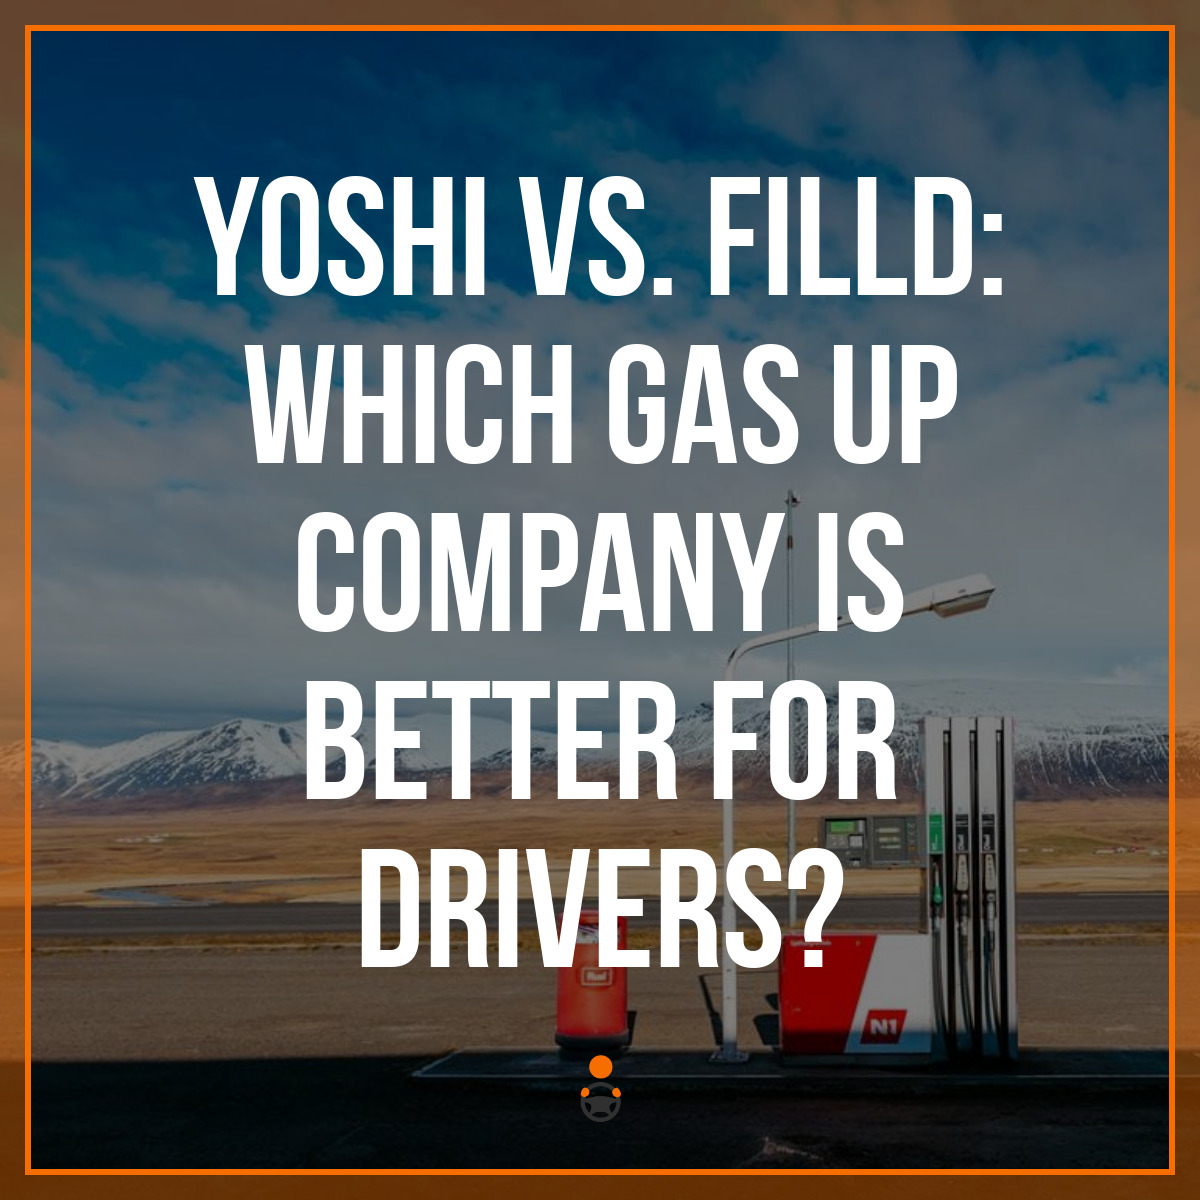 Yoshi vs. Filld: Which Gas Up Company is Better for Drivers?